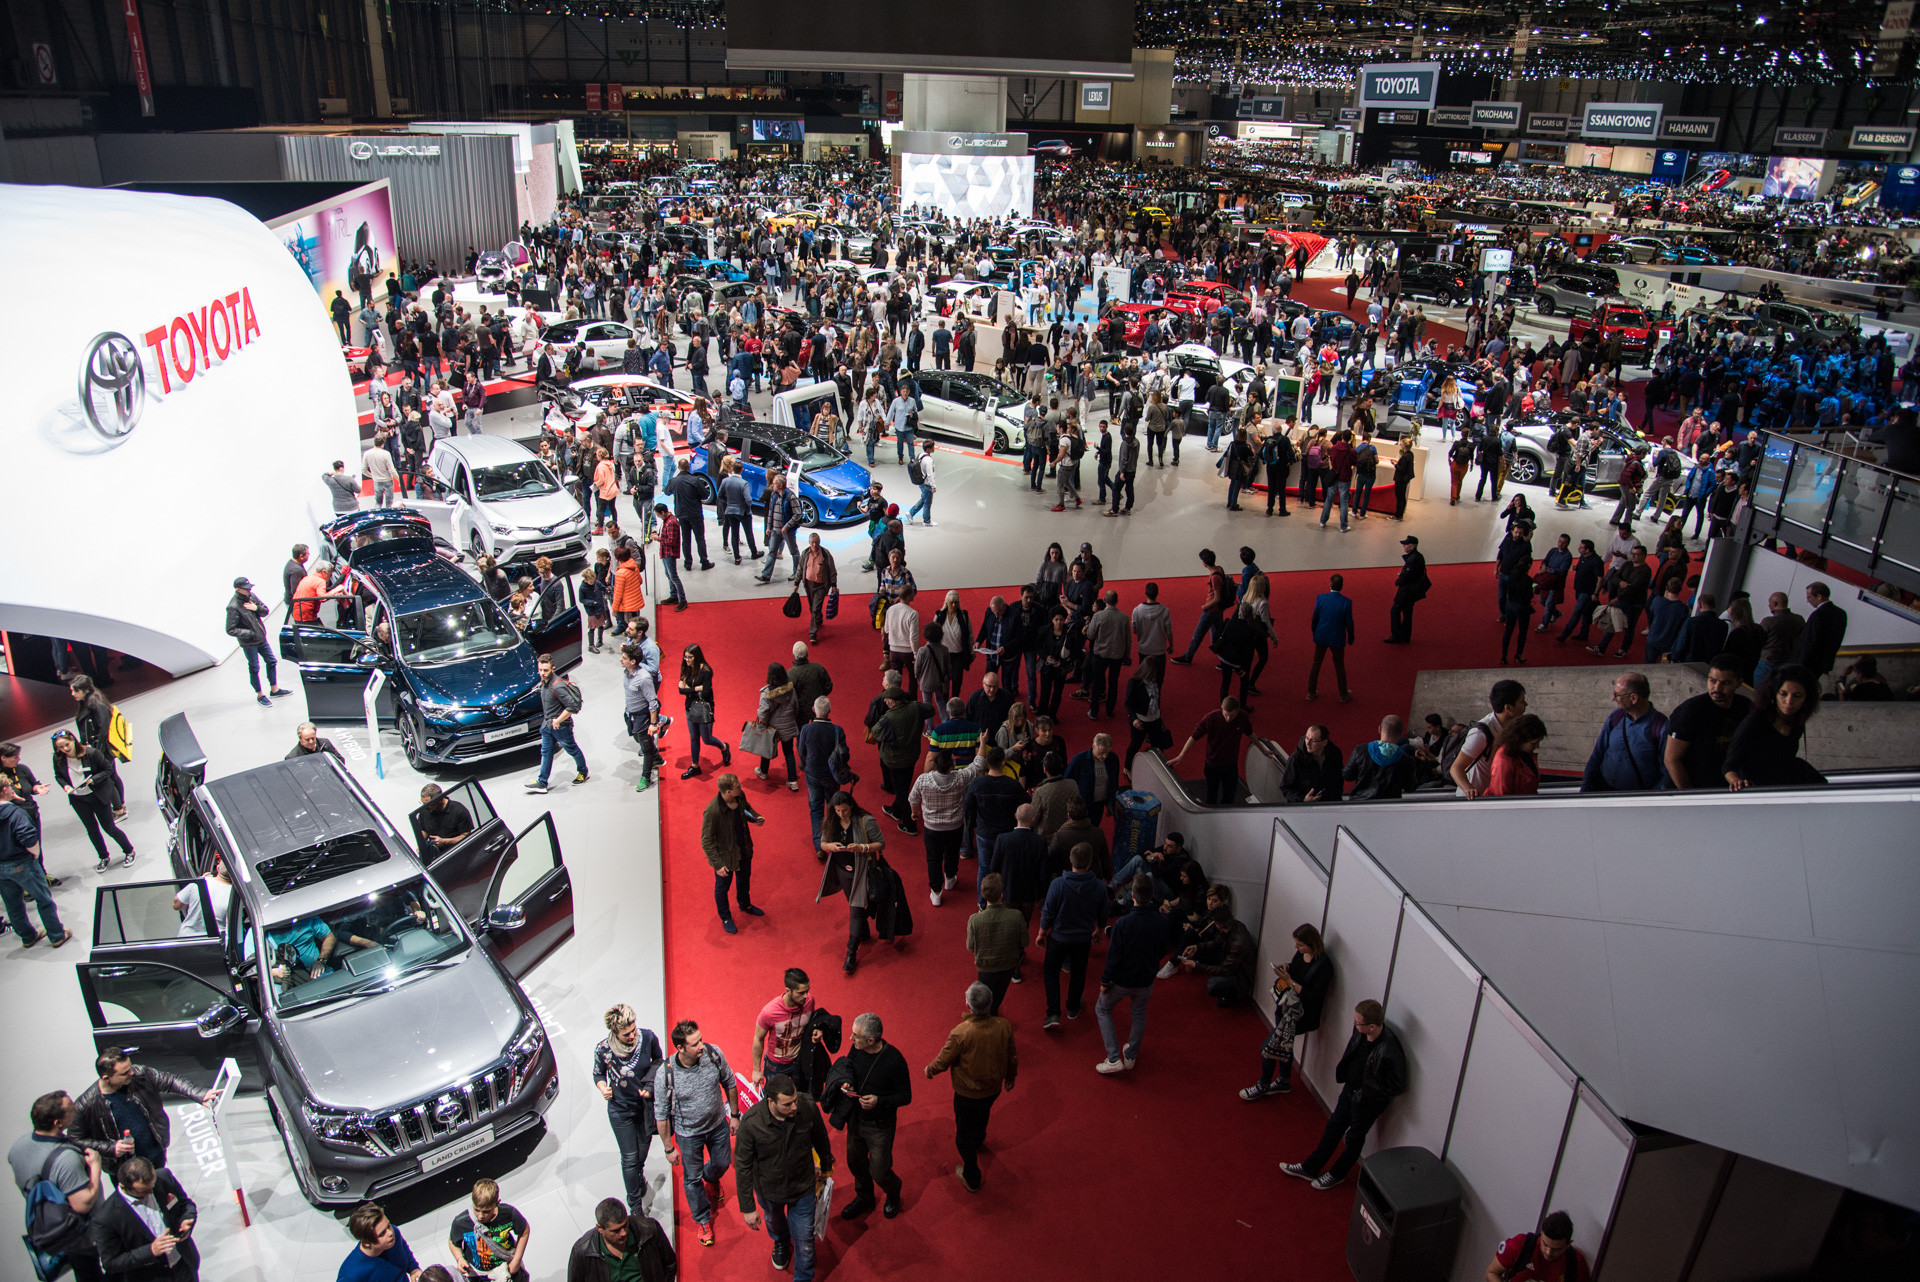 geneva-international-motor-show-igor-sinitsin-84